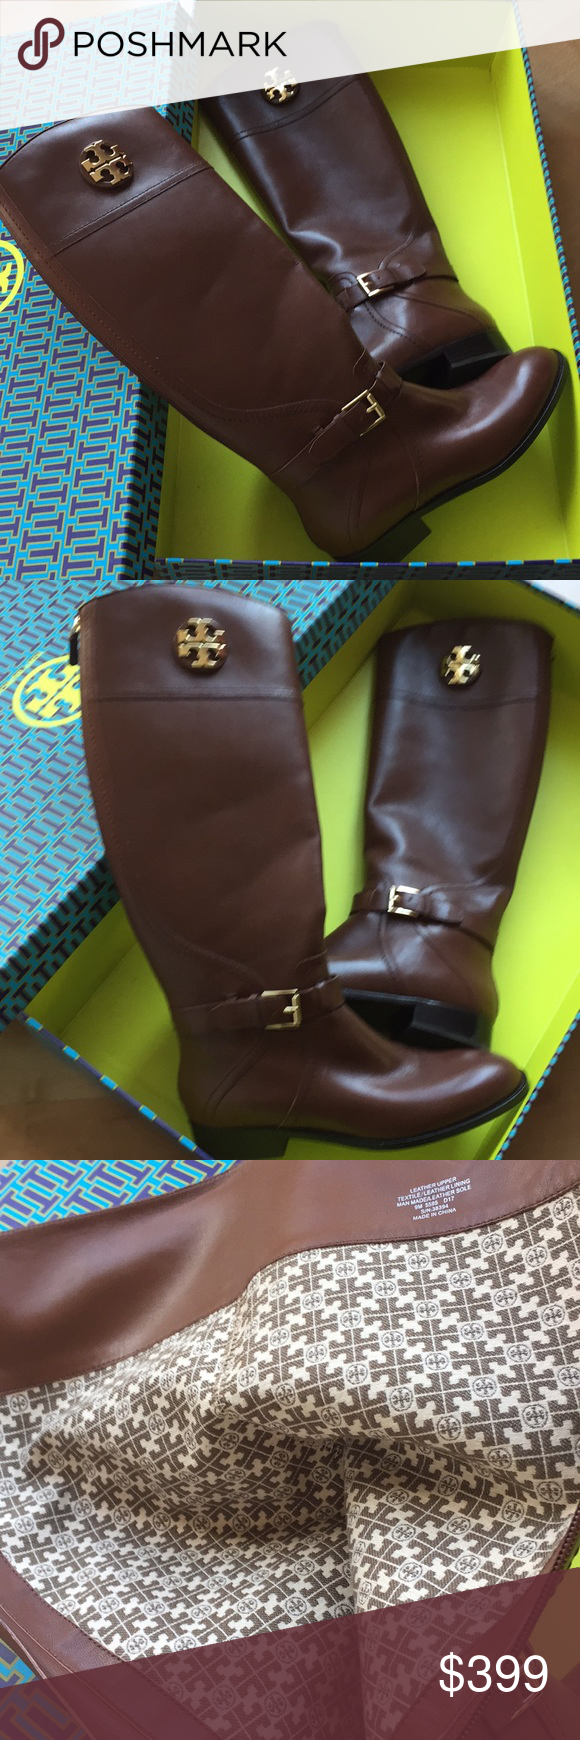 77380ce63b91 Tory Burch Adeline Riding Boot - Almond -Size 9 Tory Burch Adeline 20MM  Riding Boots in Almond. Size 9. New in box with tags. Beautiful boots!